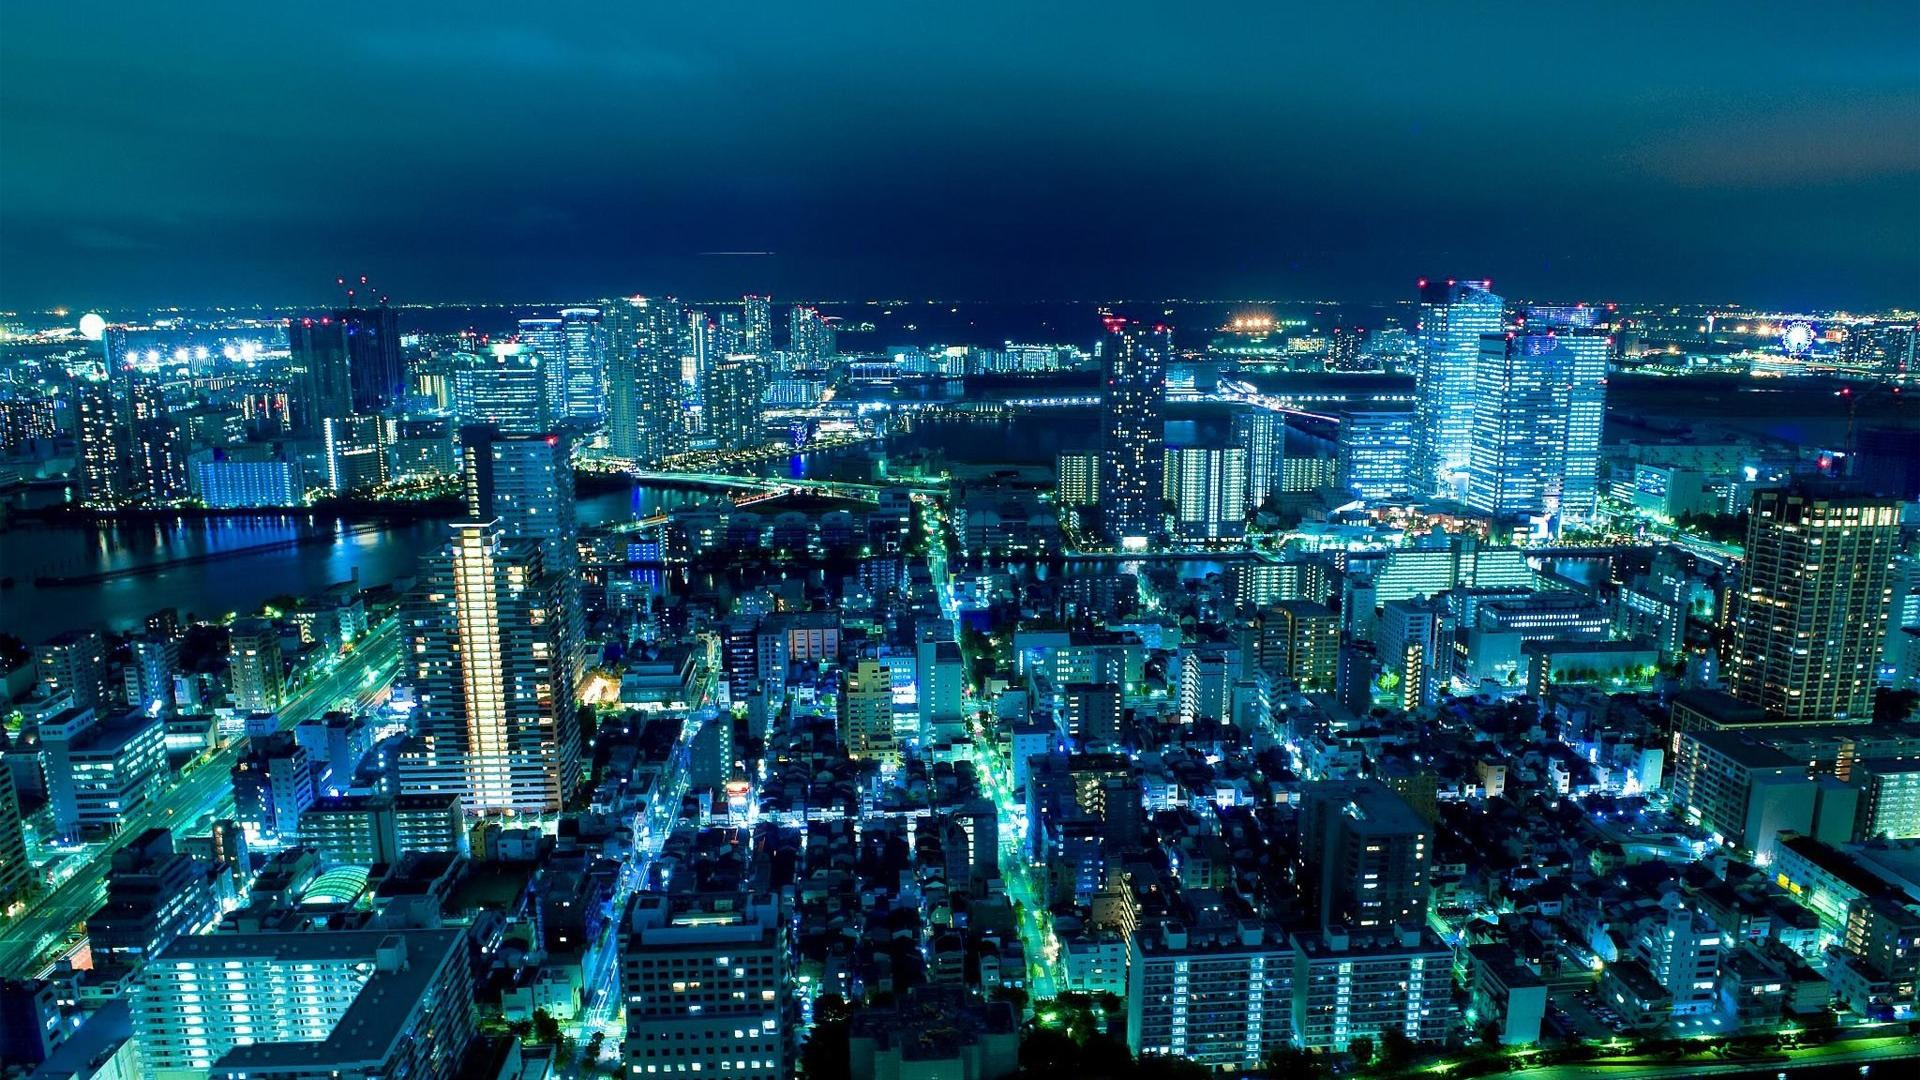 Japan tokyo city lights cityscapes wallpaper 78605 1920x1080